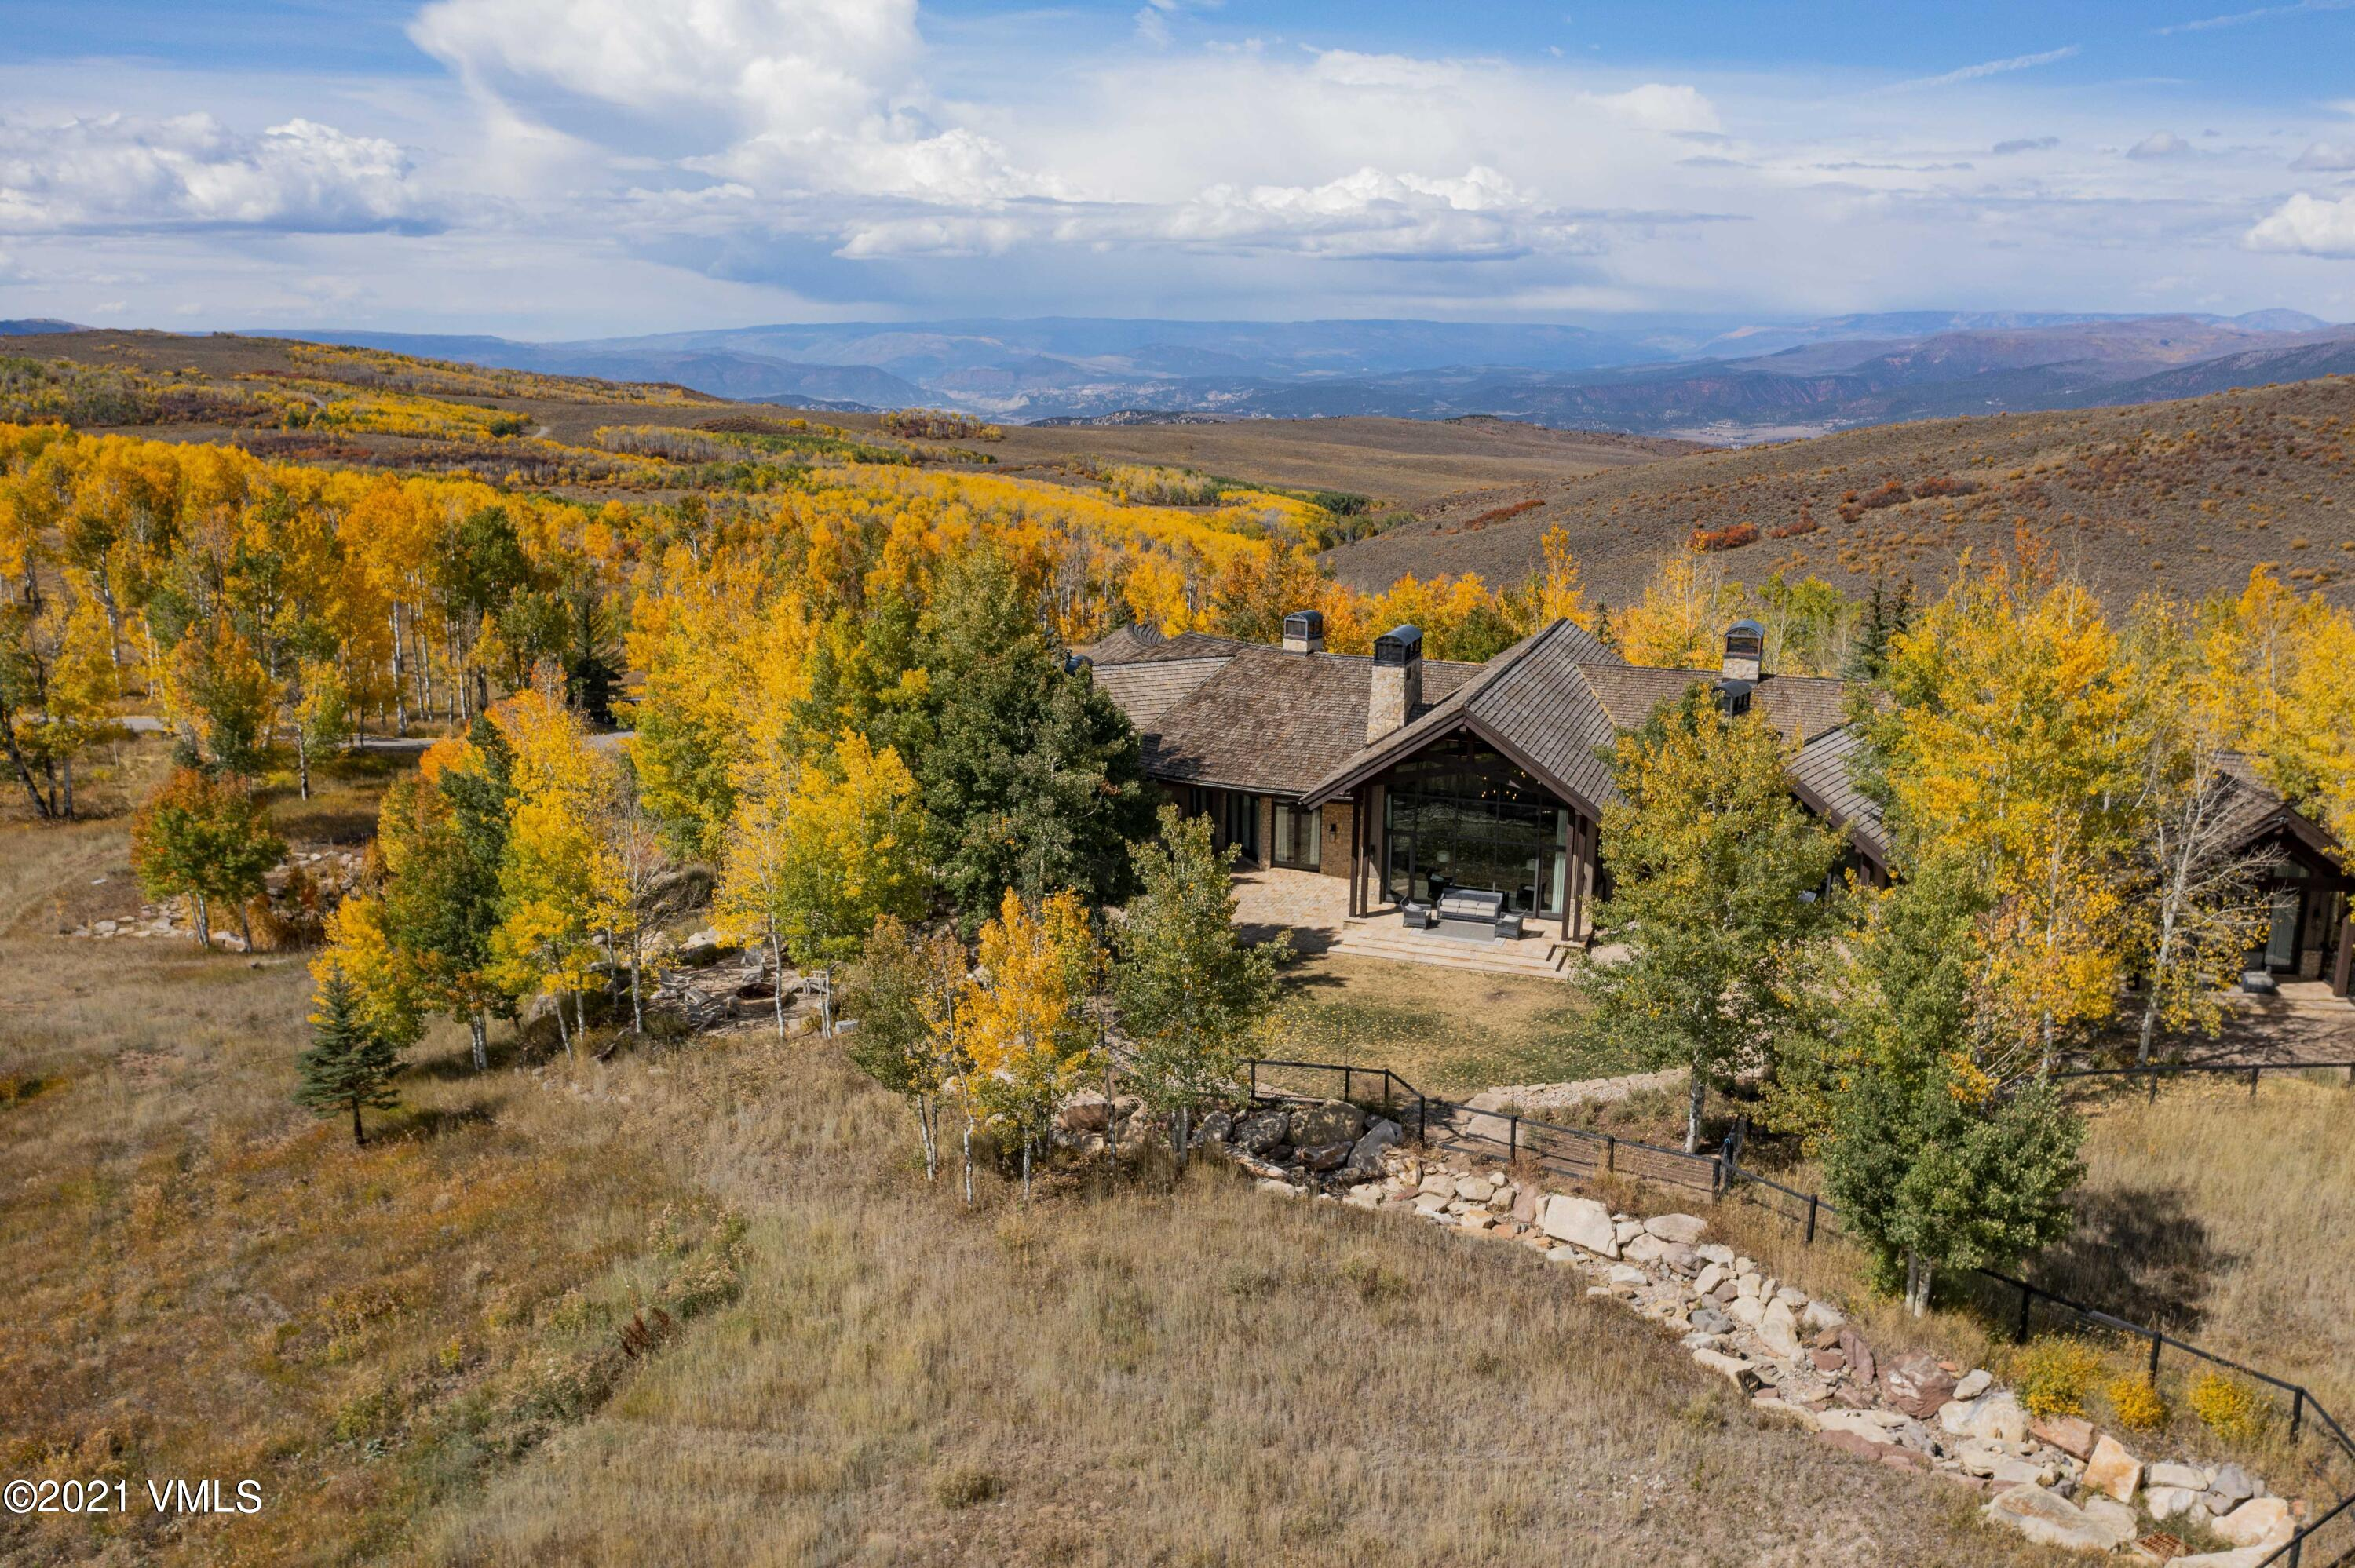 Perched atop an expansive alpine ridge, the sprawling 360-degree views from this 35+ acre property are a true rarity in the Vail Valley.  Enjoy sunrises over the full Gore Range and sitting in peaceful silence watching the alpenglow over the Back Bowls of Vail.  The gently sloping lot has a brand new split rail fence around the perimeter and pastures making this a fantastic opportunity for horse-lovers or those who prefer privacy and pristine mountain living.  Fully remodeled, the interior finishes and aesthetics of this home will impress even the most discerning taste.  An expansive main level master suite and cozy sitting area are the perfect retreat from the bright and open great room and state of the art kitchen.  The lower level boasts a gorgeous wine room and a high-end attached green house.  A unique 5+ car garage with flex space for a game room, golf simulator or toy storage makes this home a dream for the avid outdoorsman.  This property is truly unique in every way and is an absolute must-see.